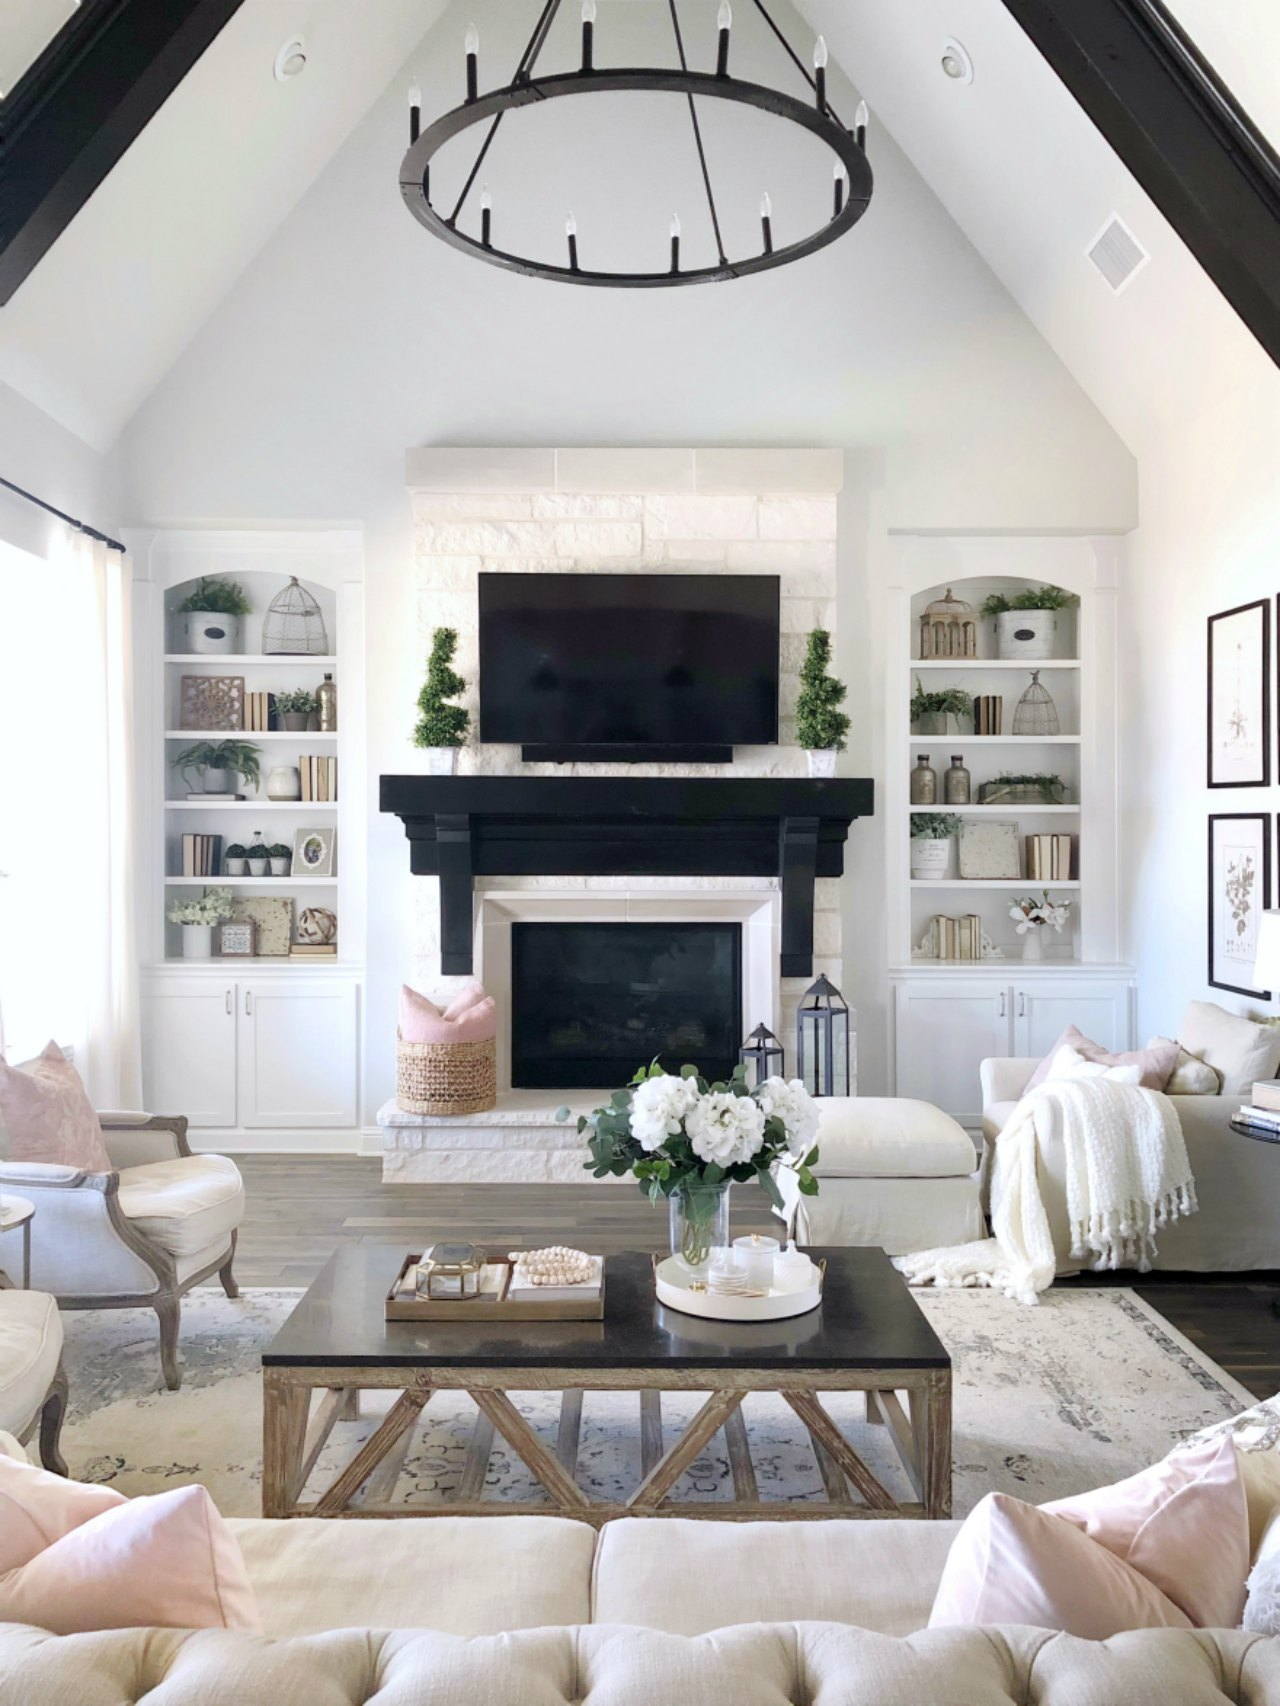 Kitchen And Living Room Tour Amp Sources My Texas House